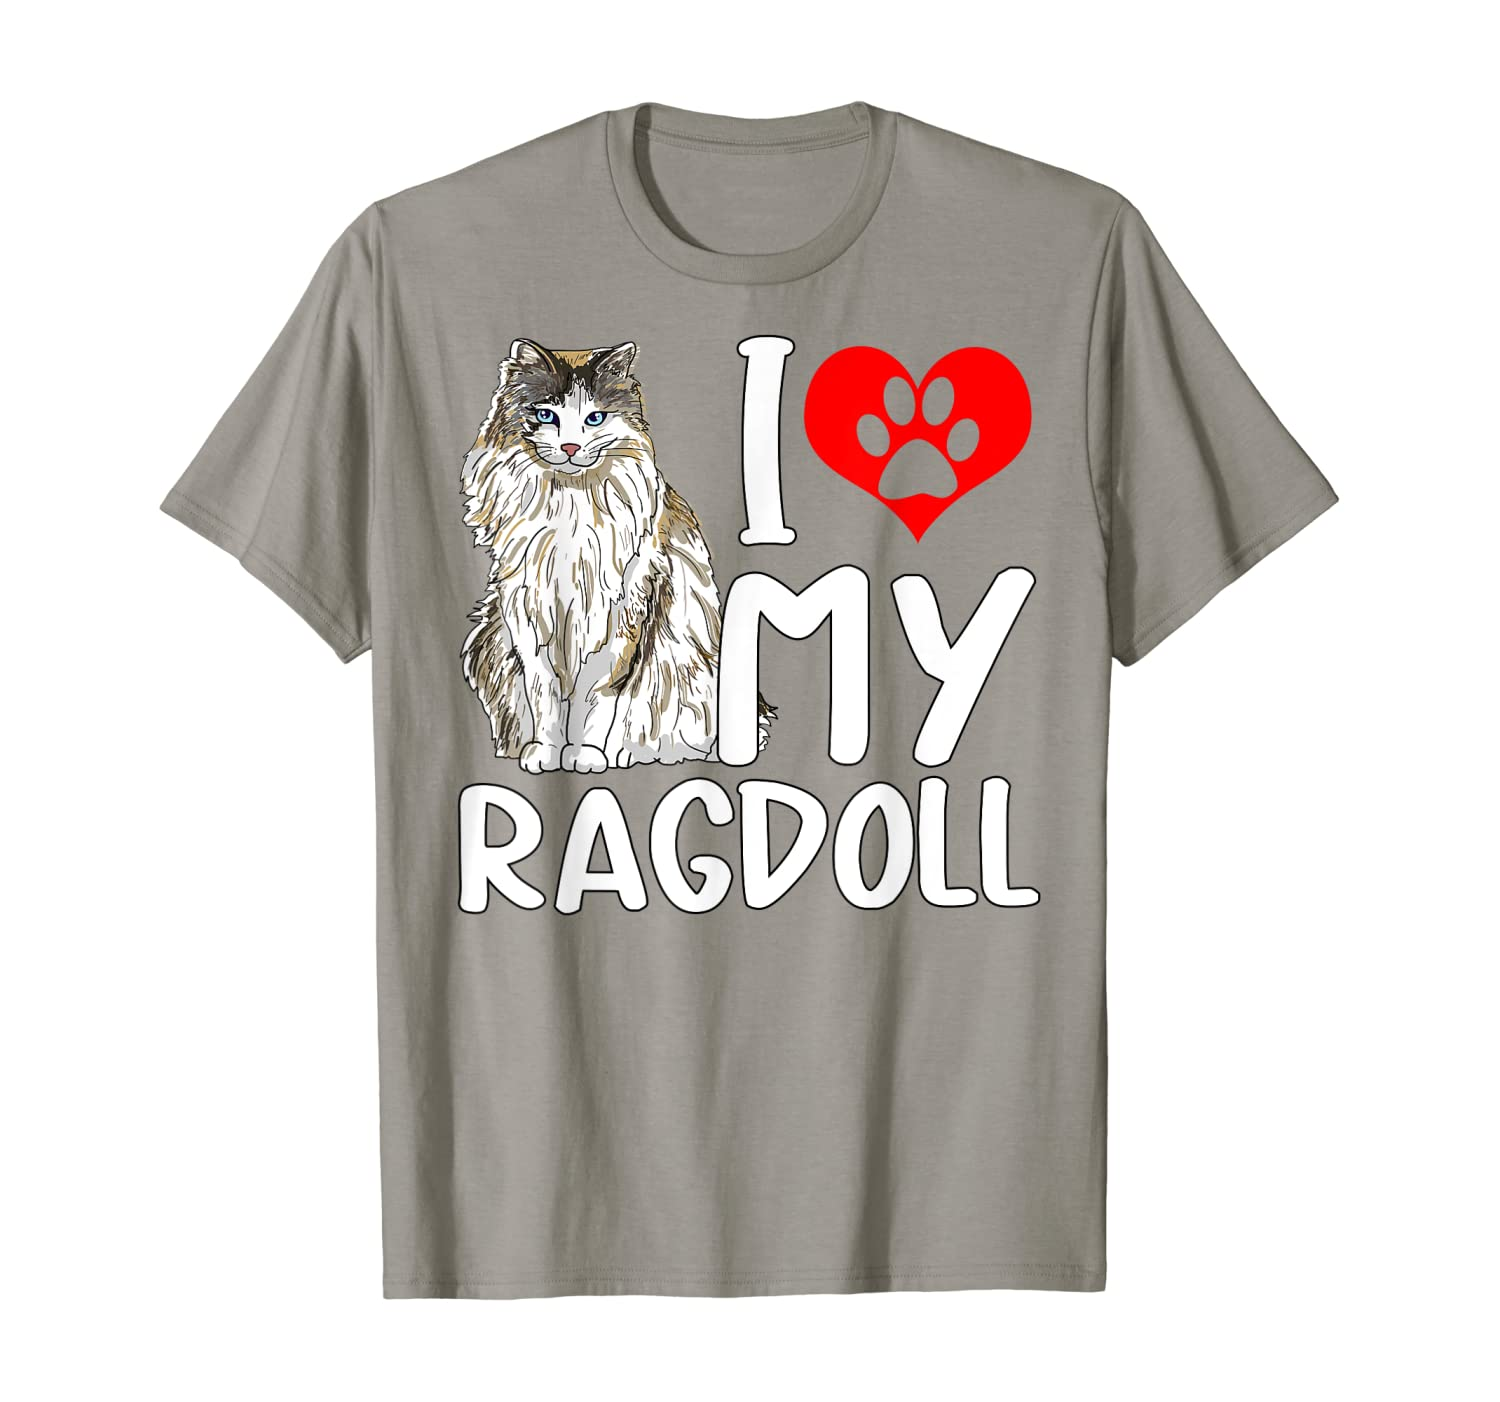 I Love My Ragdoll Cat Gift For Men Women And Kids T-Shirt